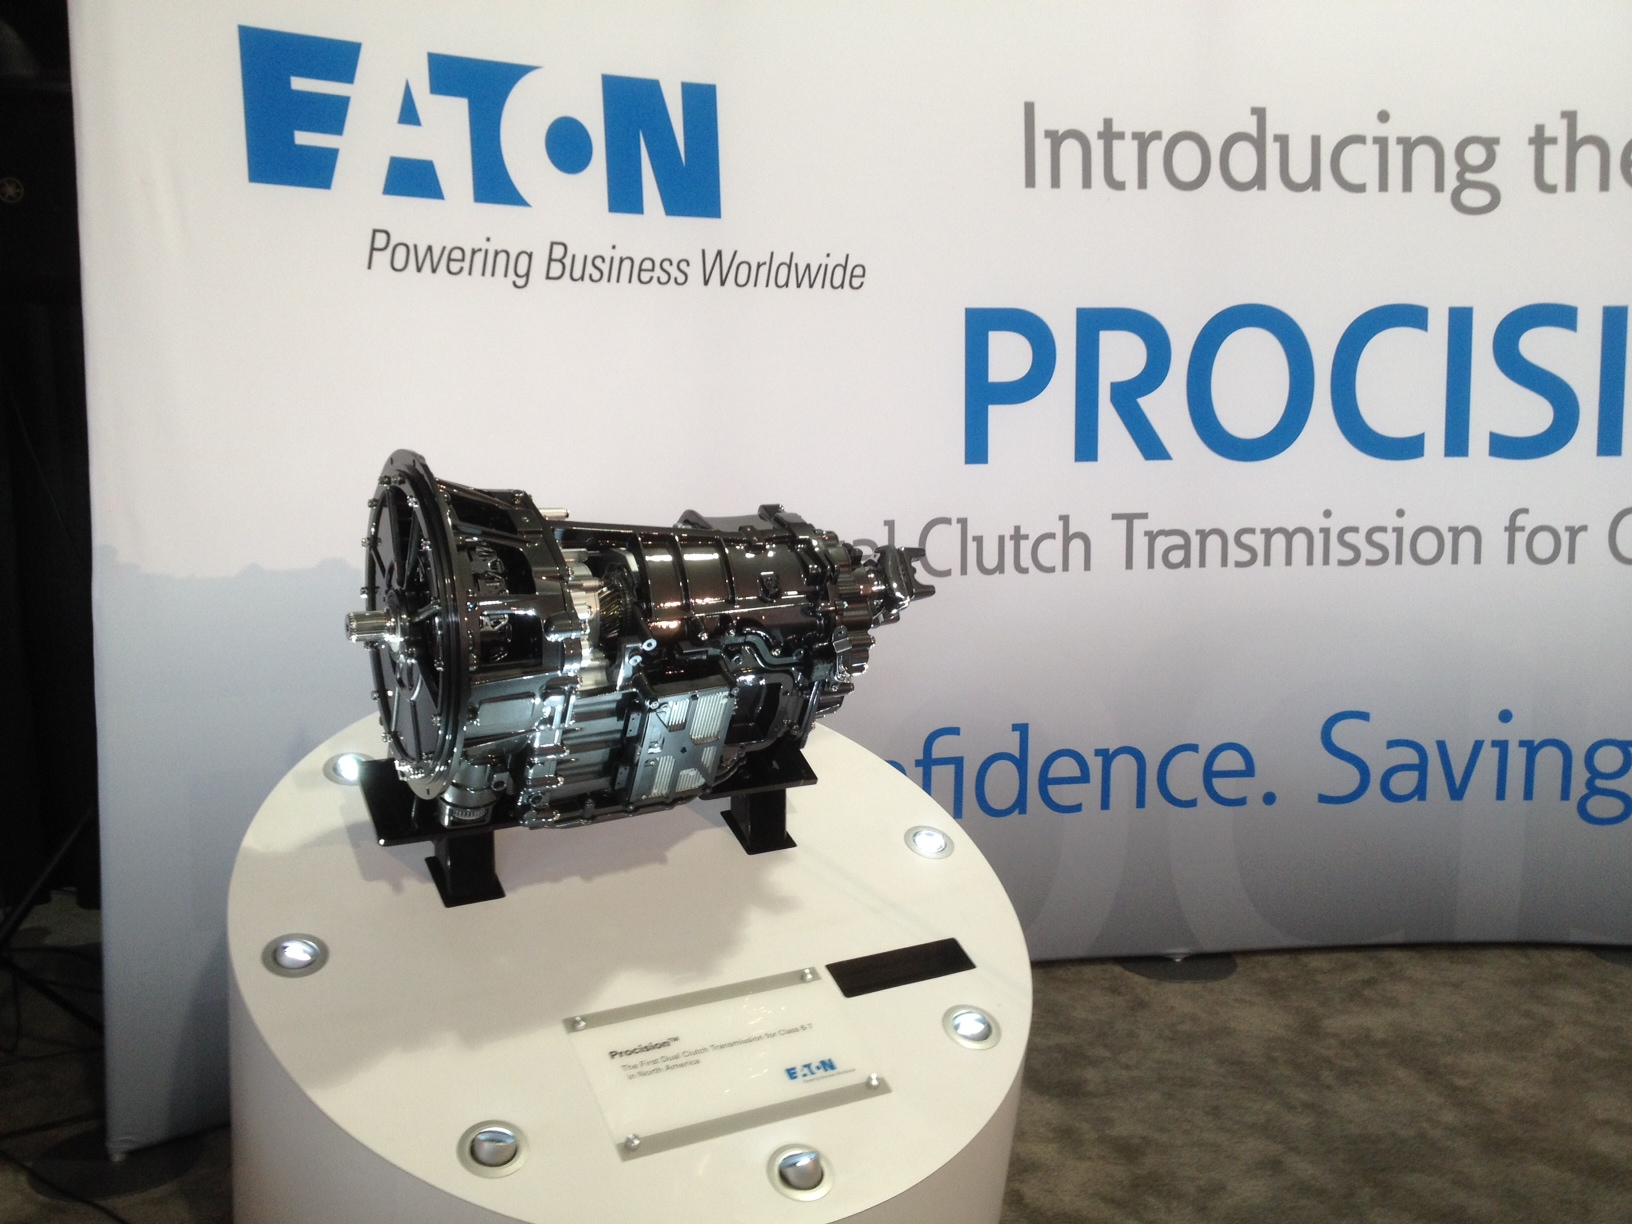 Eaton Stirs up Medium-Duty Market with Dual-Clutch Transmission